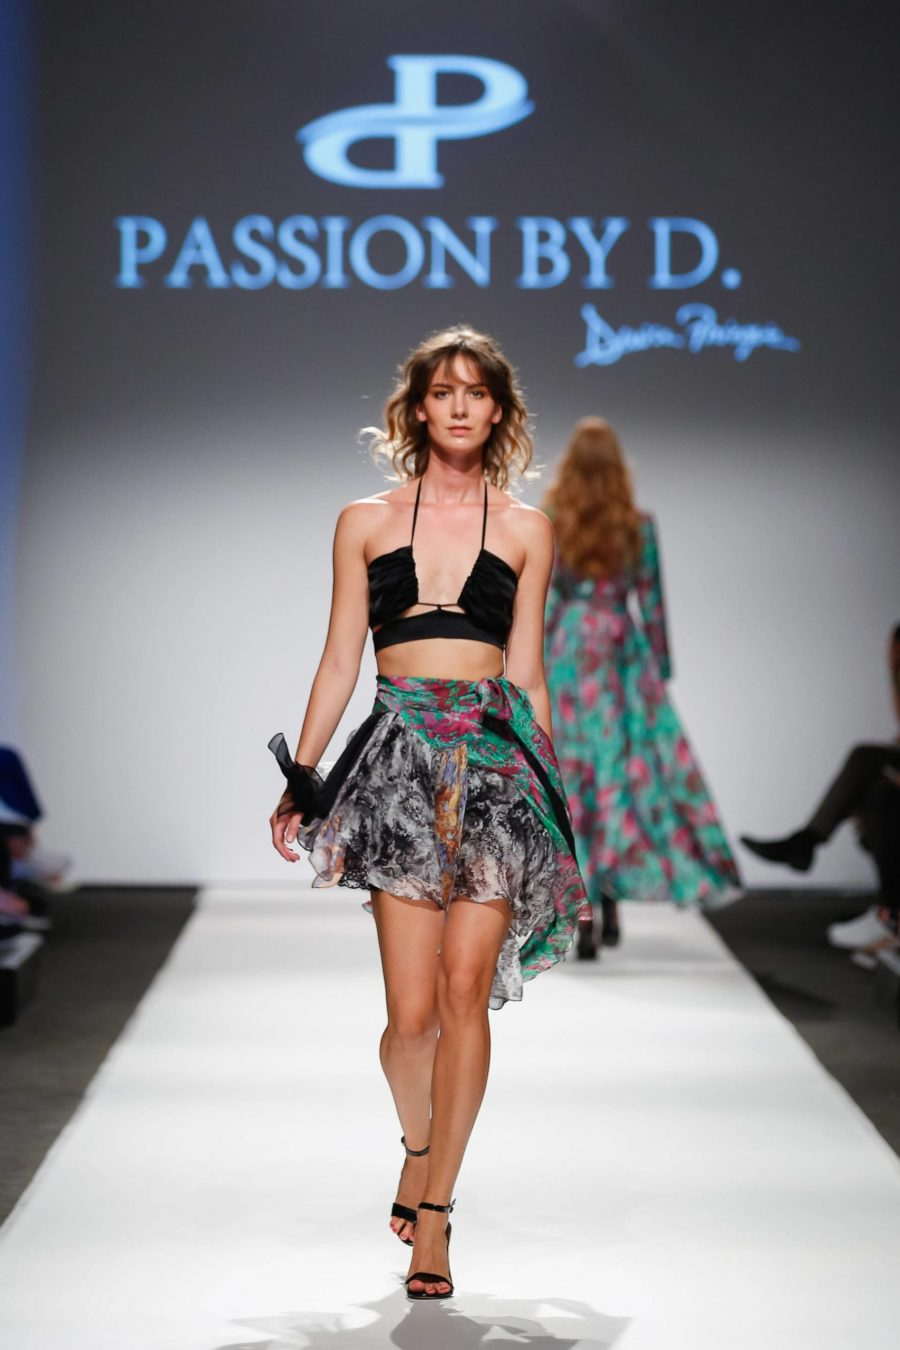 Prezentare moda Vienna Fashion week 2019 - Passion by D